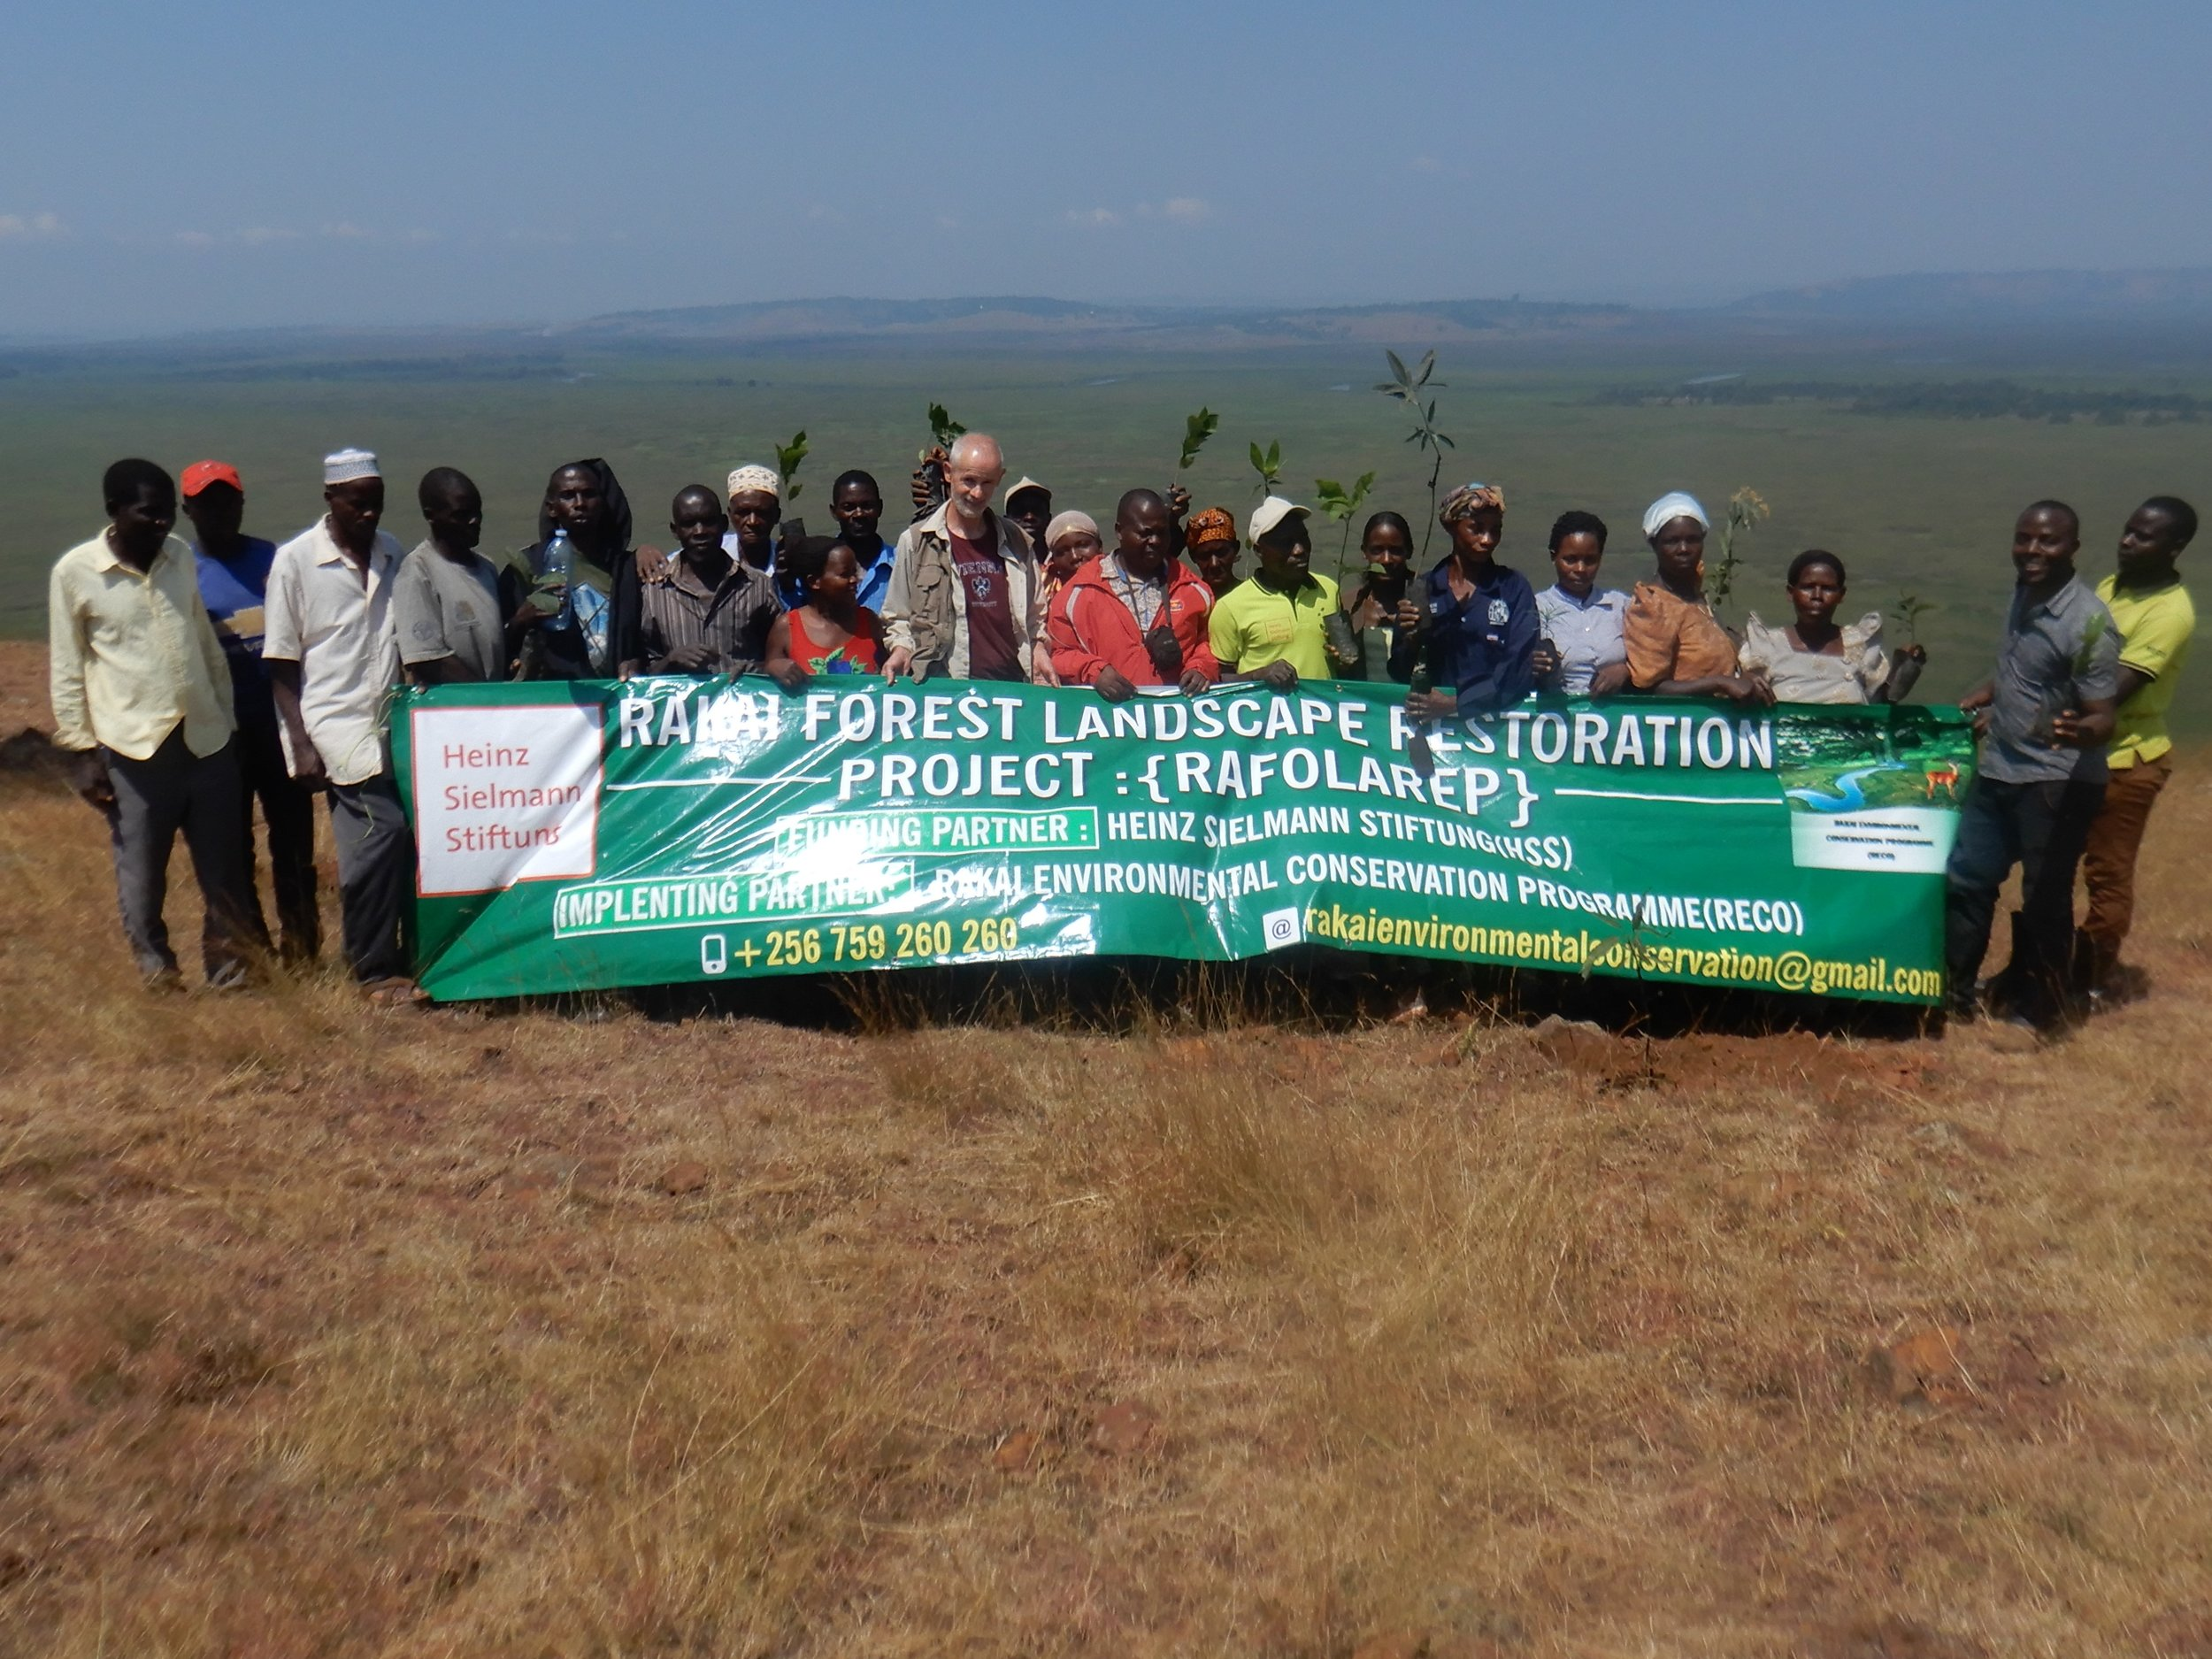 This is a group photo with our one of our local community groups I work with to restore the degraded lands.